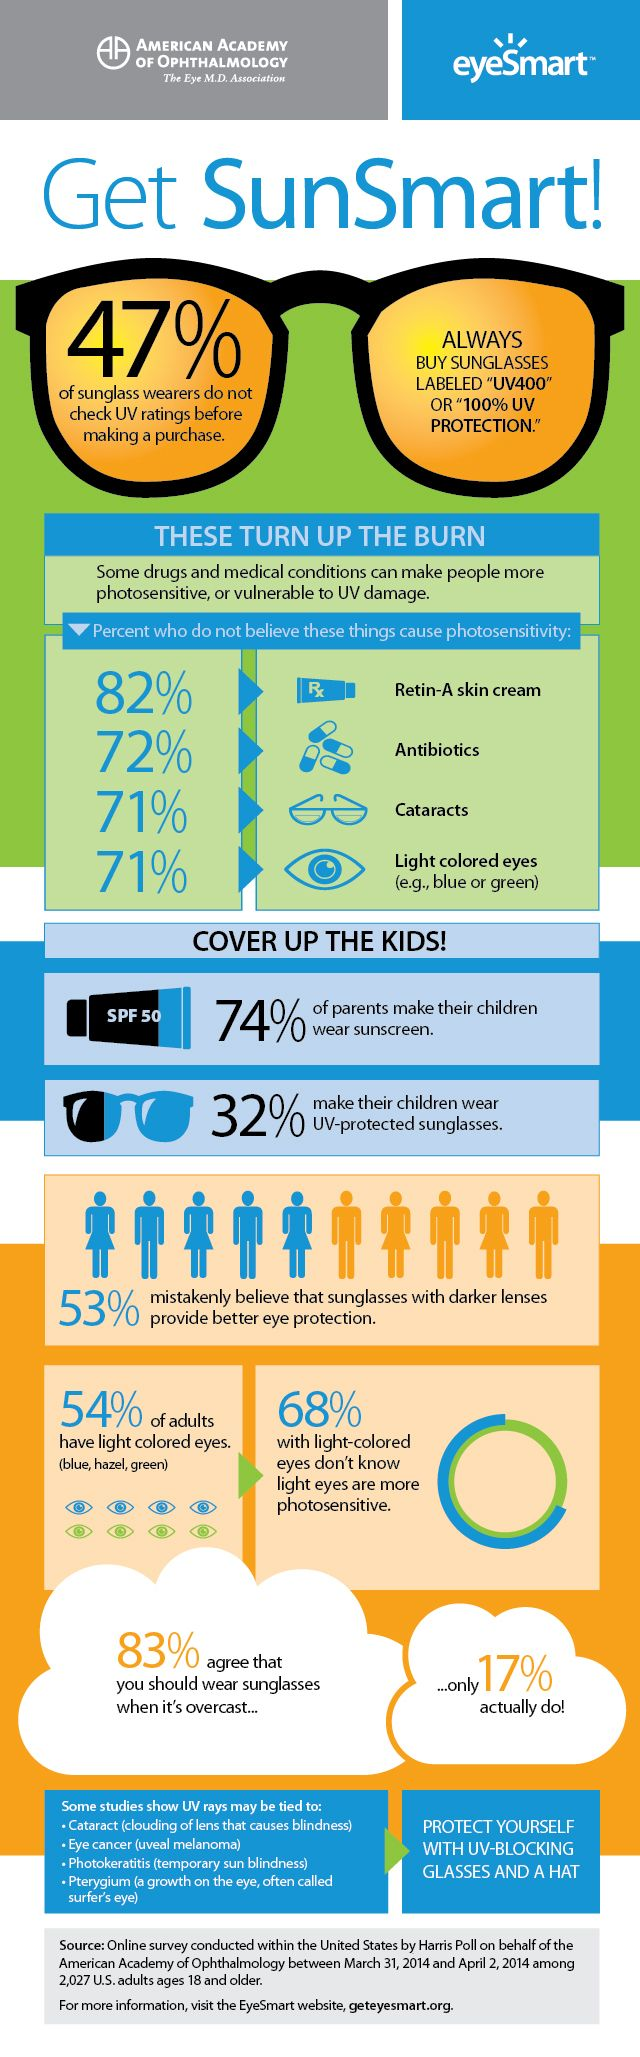 When it comes to practicing sun safety, Americans are getting smarter. But in some cases, we're still in the dark on UV exposure and how to avoid it. Remember to cover up with a hat, glasses and sunscreen!  #SkinCancer #GetEyeSmart